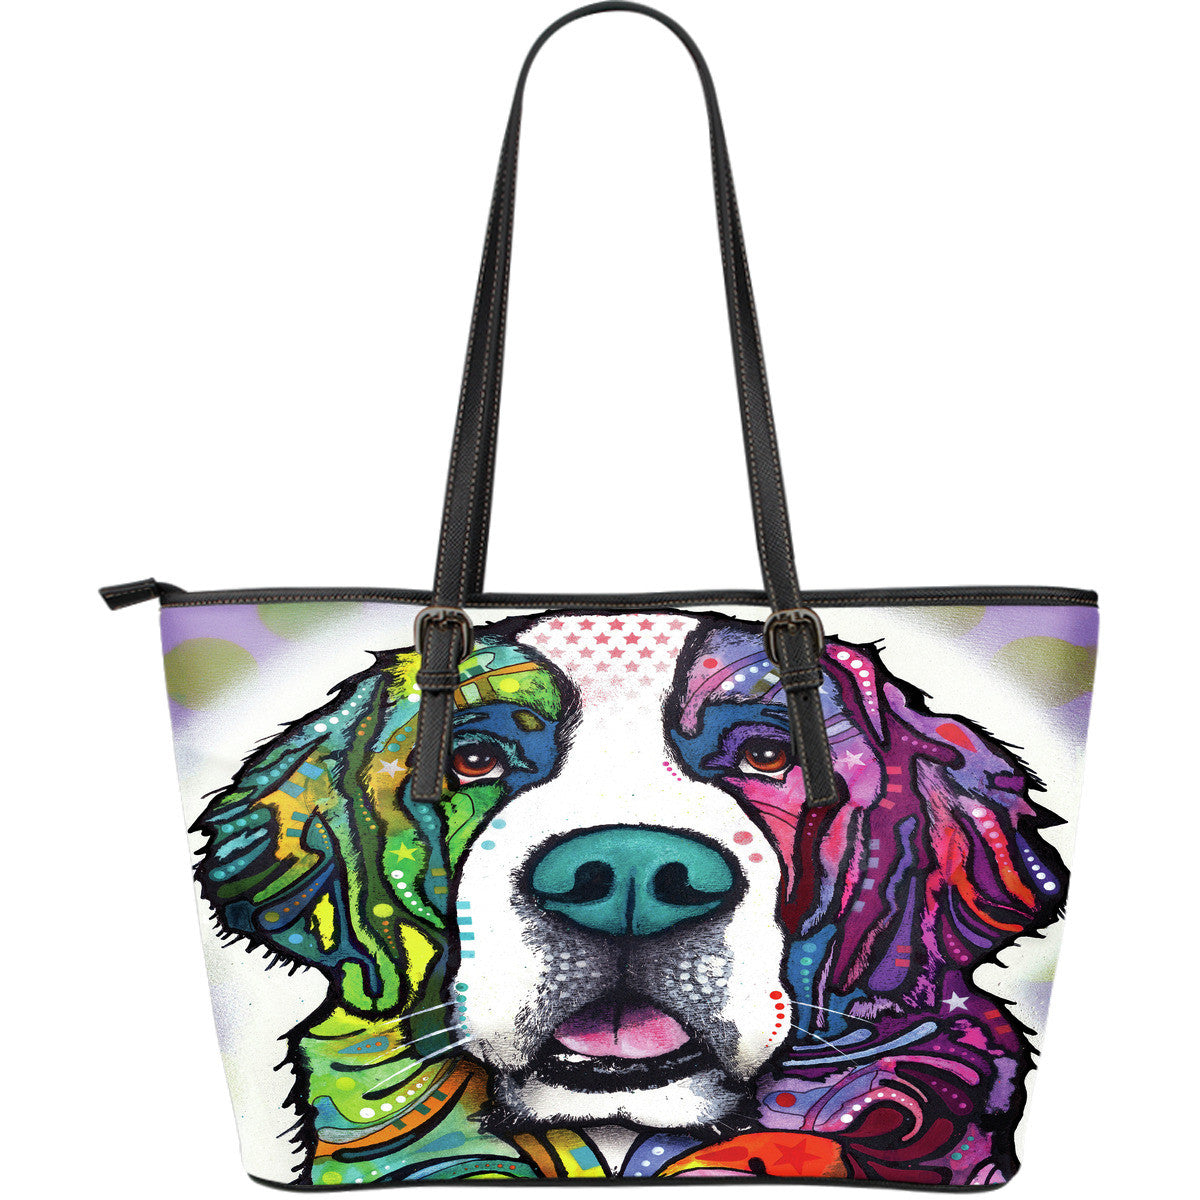 St. Bernard Leather Tote Bags (Large)